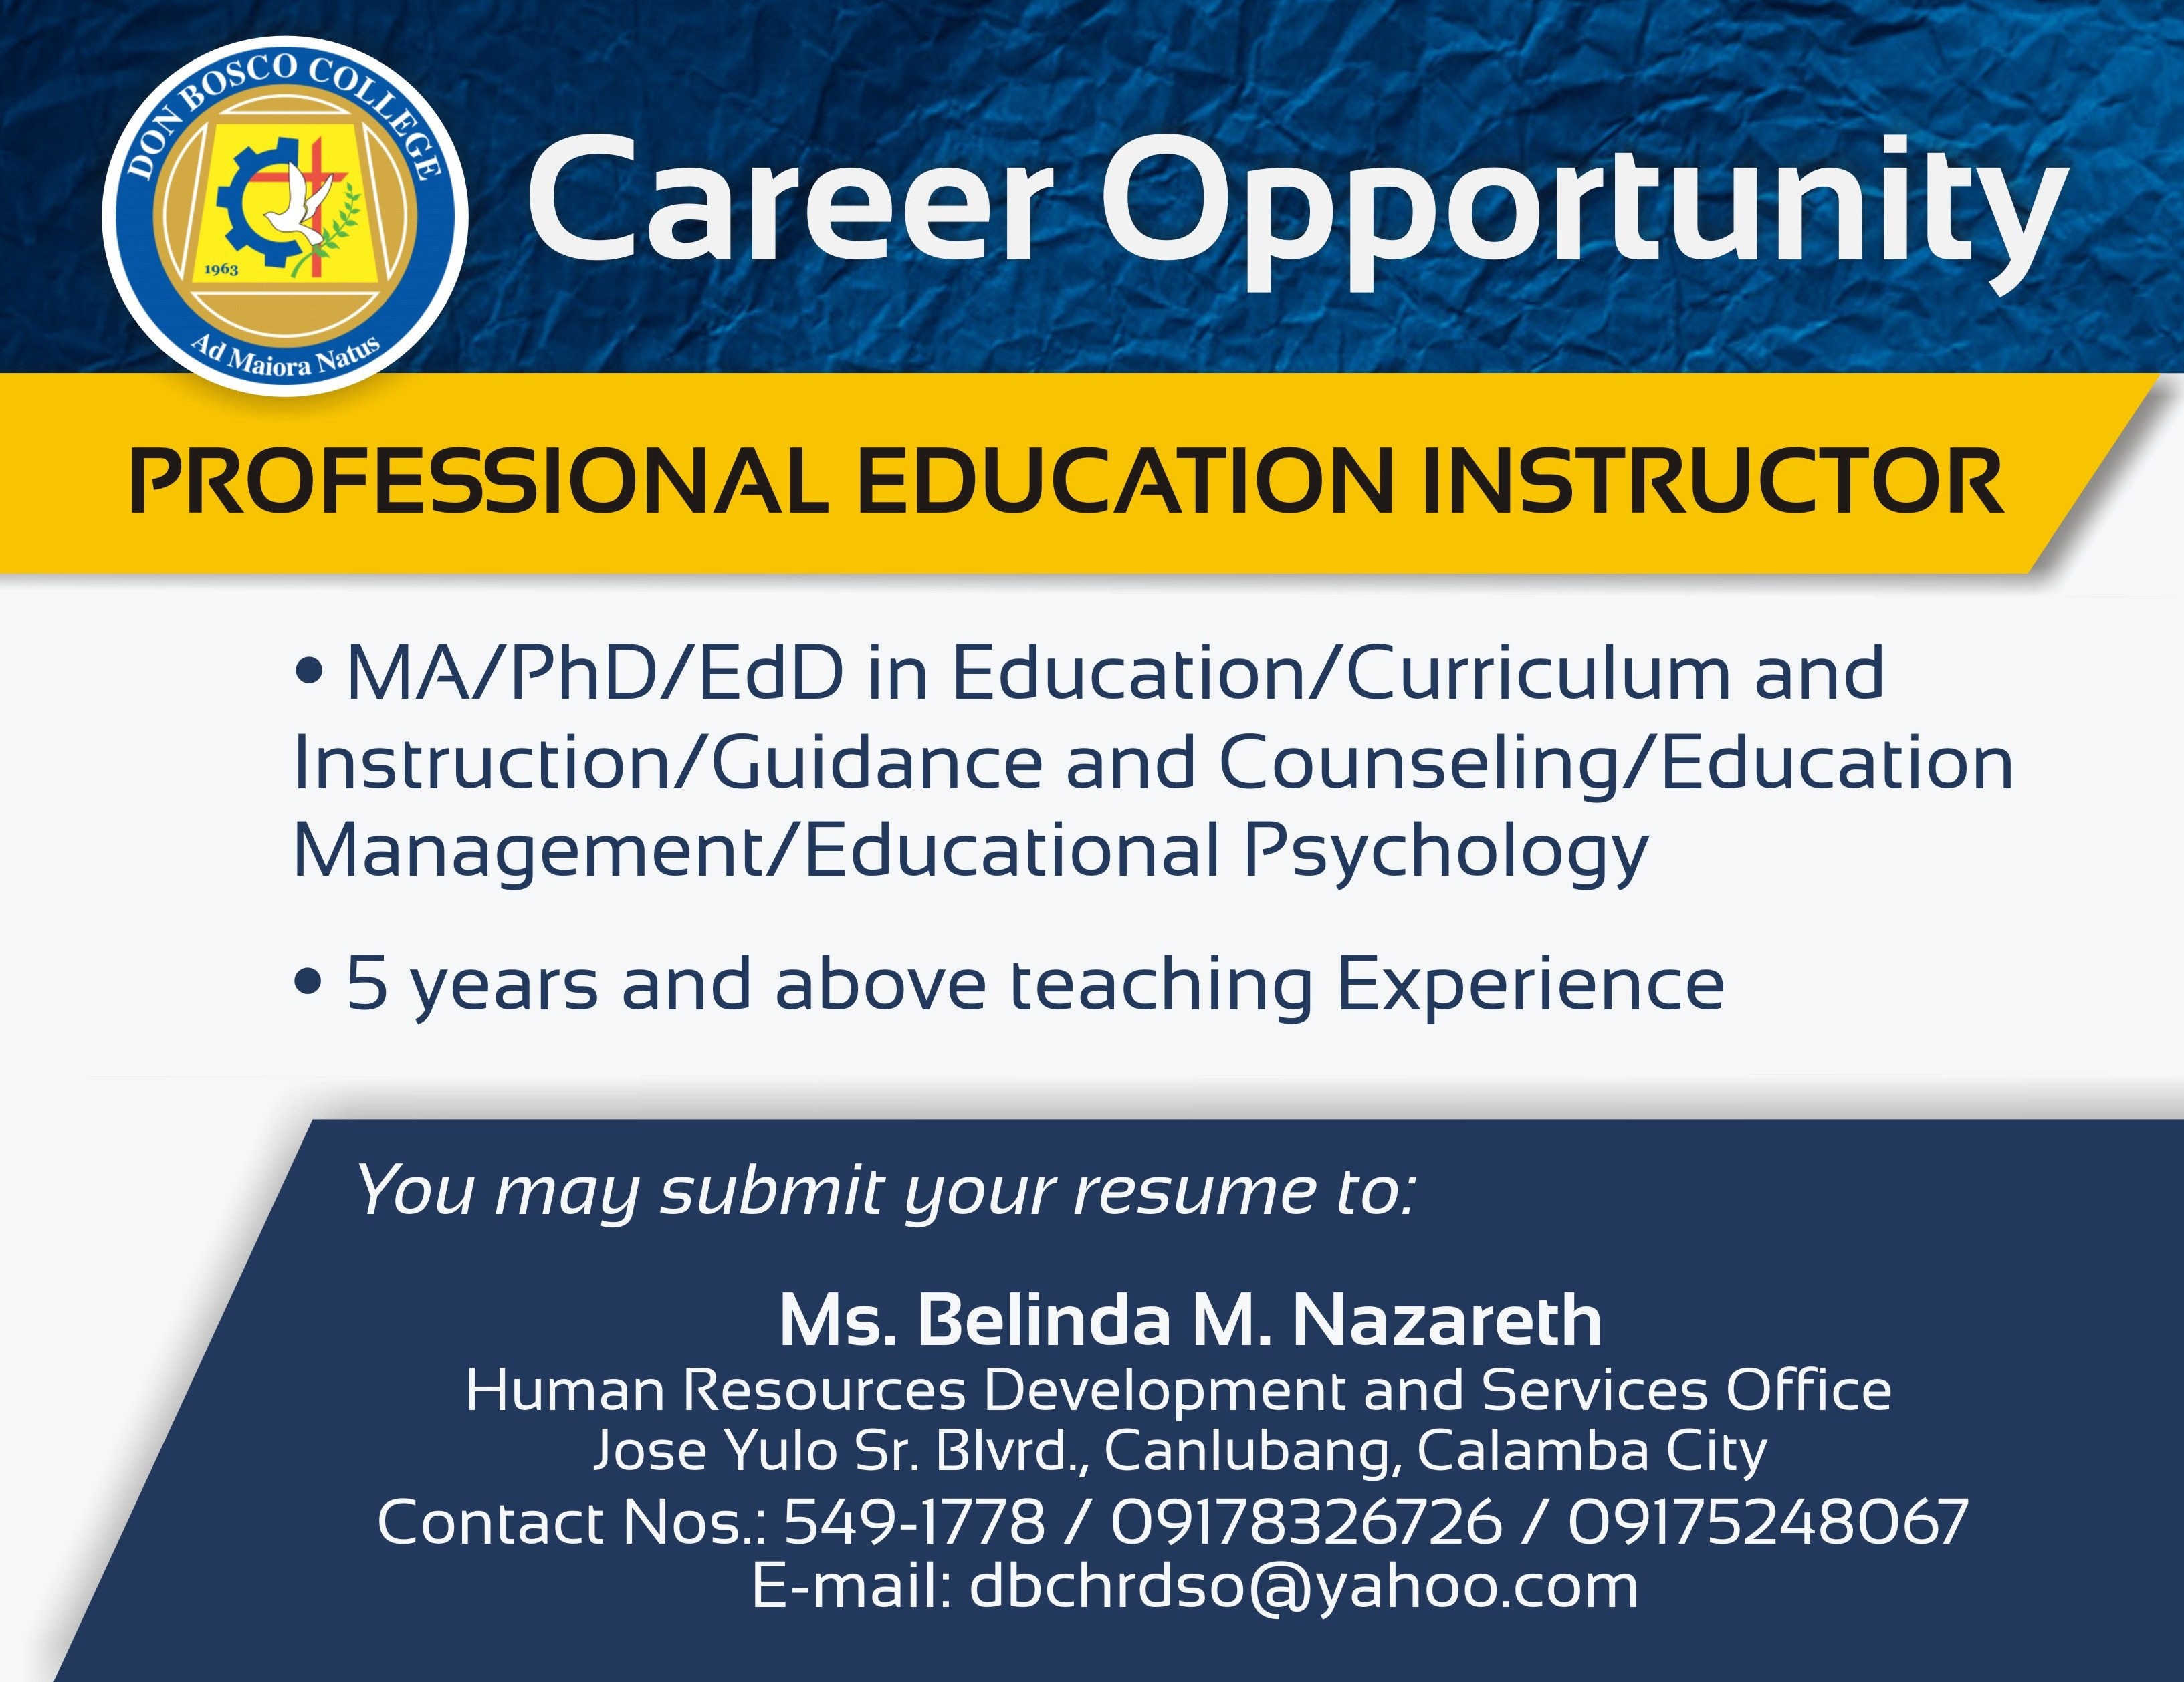 NOW HIRING PROFESSIONAL EDUCATION INSTRUCTOR